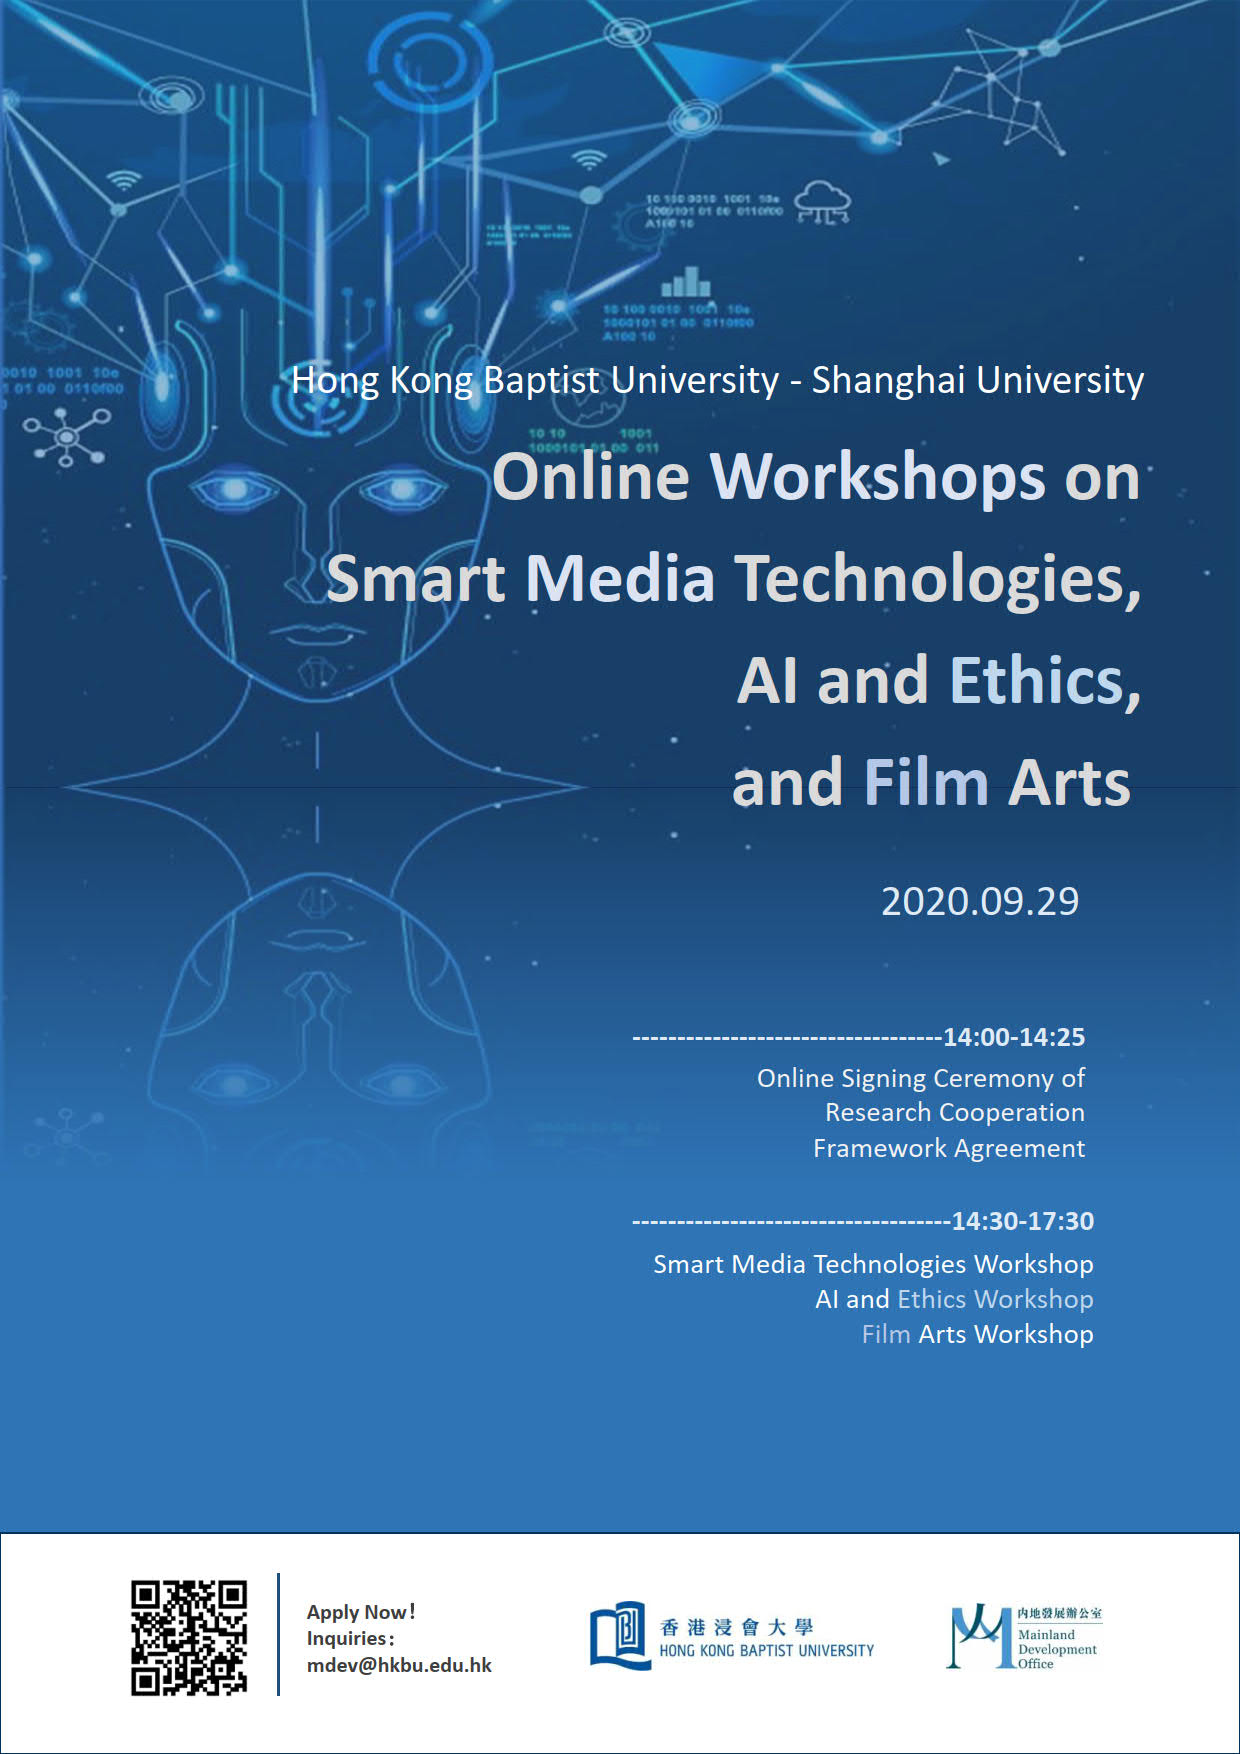 Online Workshops on Smart Media Technologies, AI and Ethics, and Film Arts